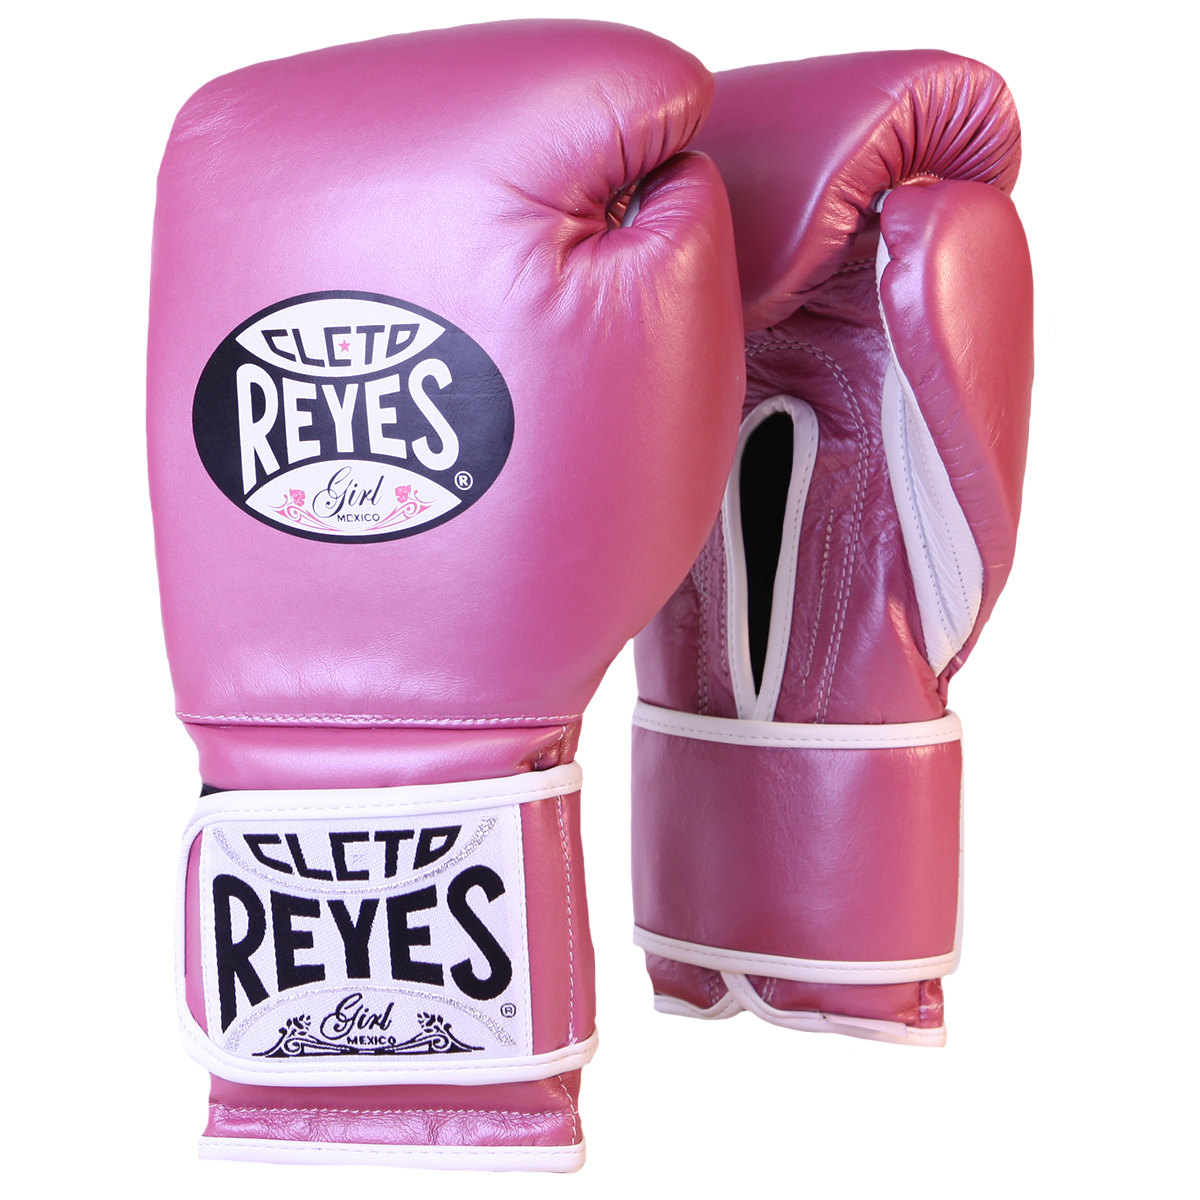 Details about Cleto Reyes Hook and Loop Leather Training Boxing Gloves - 12  oz - Pink Metallic